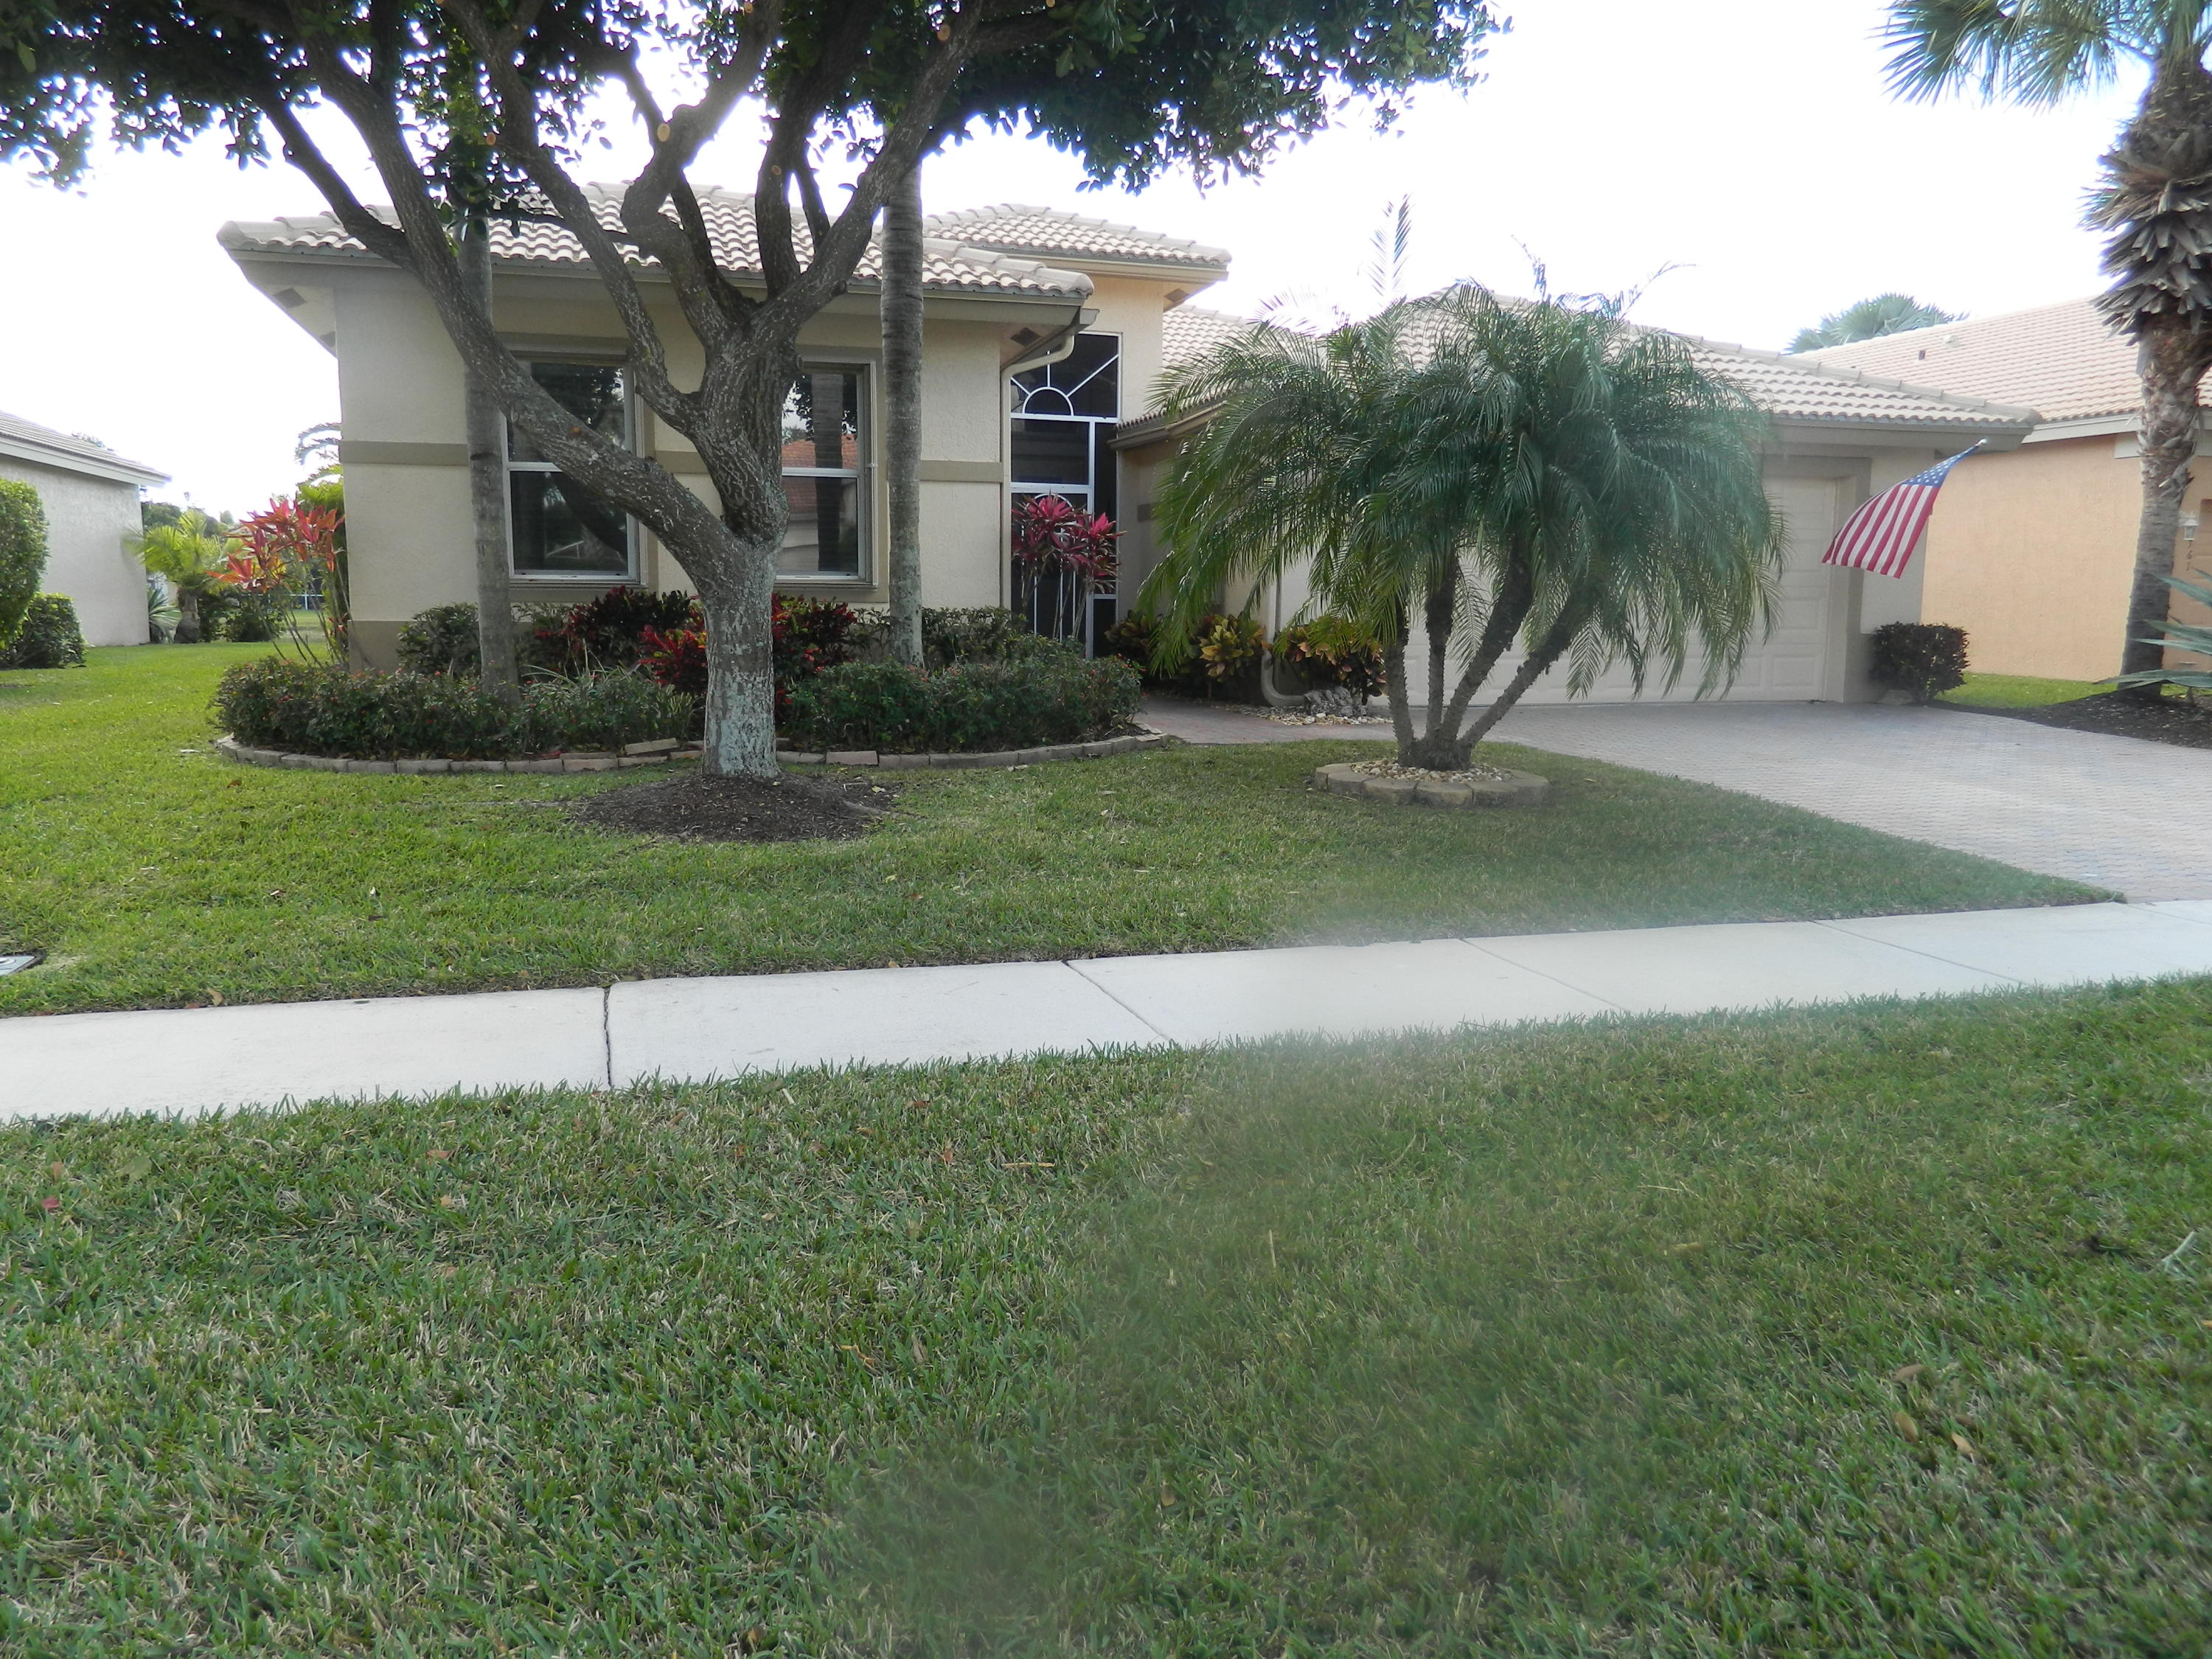 Photo of  Boynton Beach, FL 33472 MLS RX-10662342